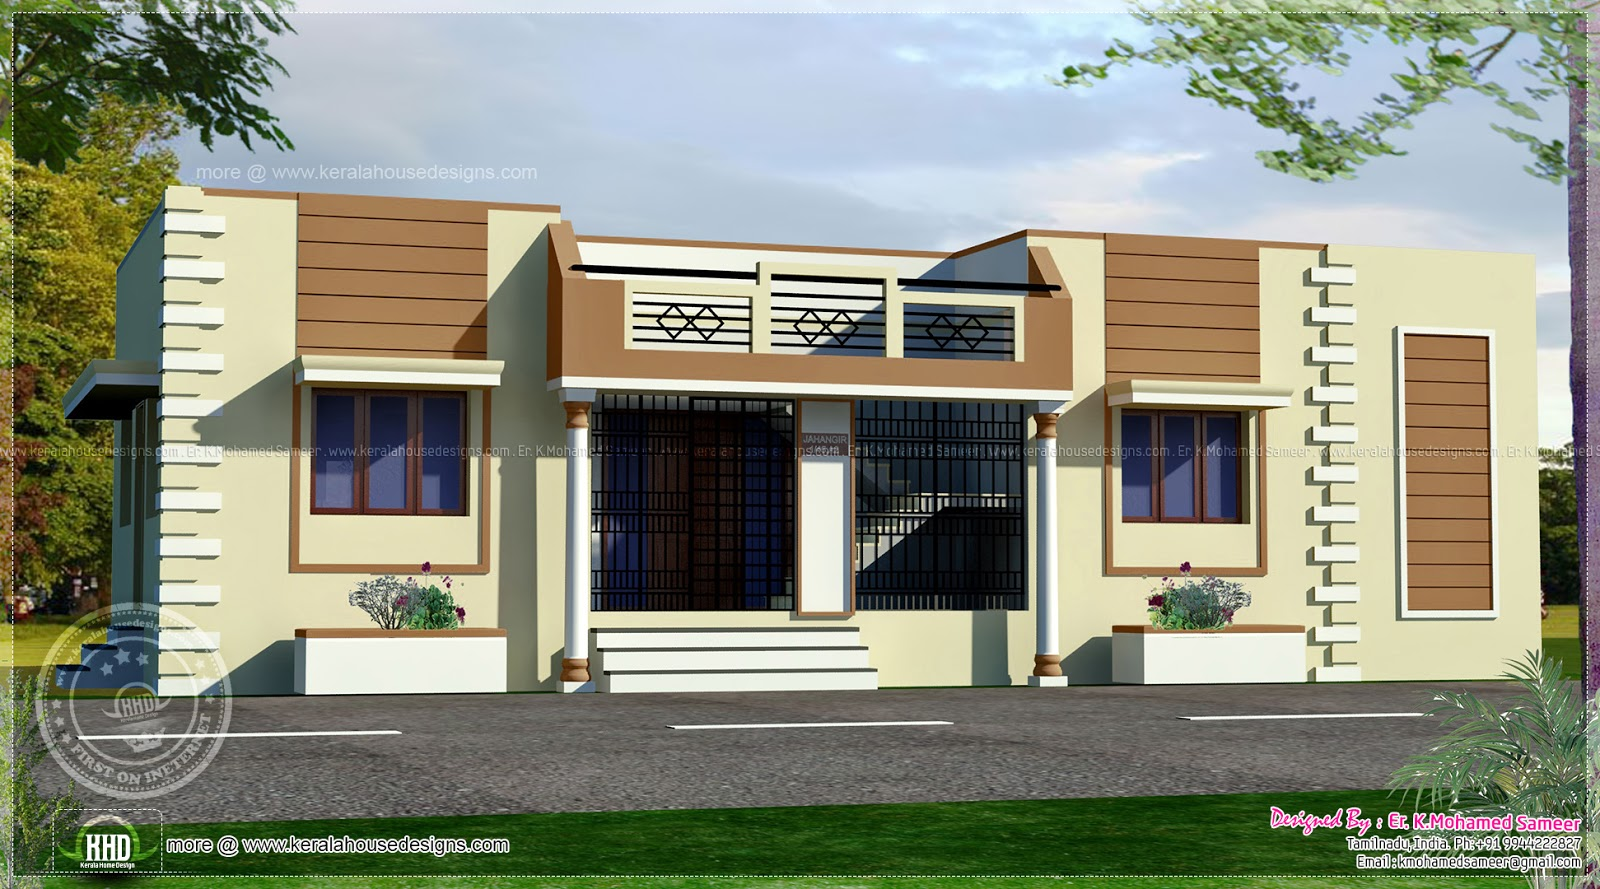 Tamilnadu style single floor home kerala home design and for Single floor home design